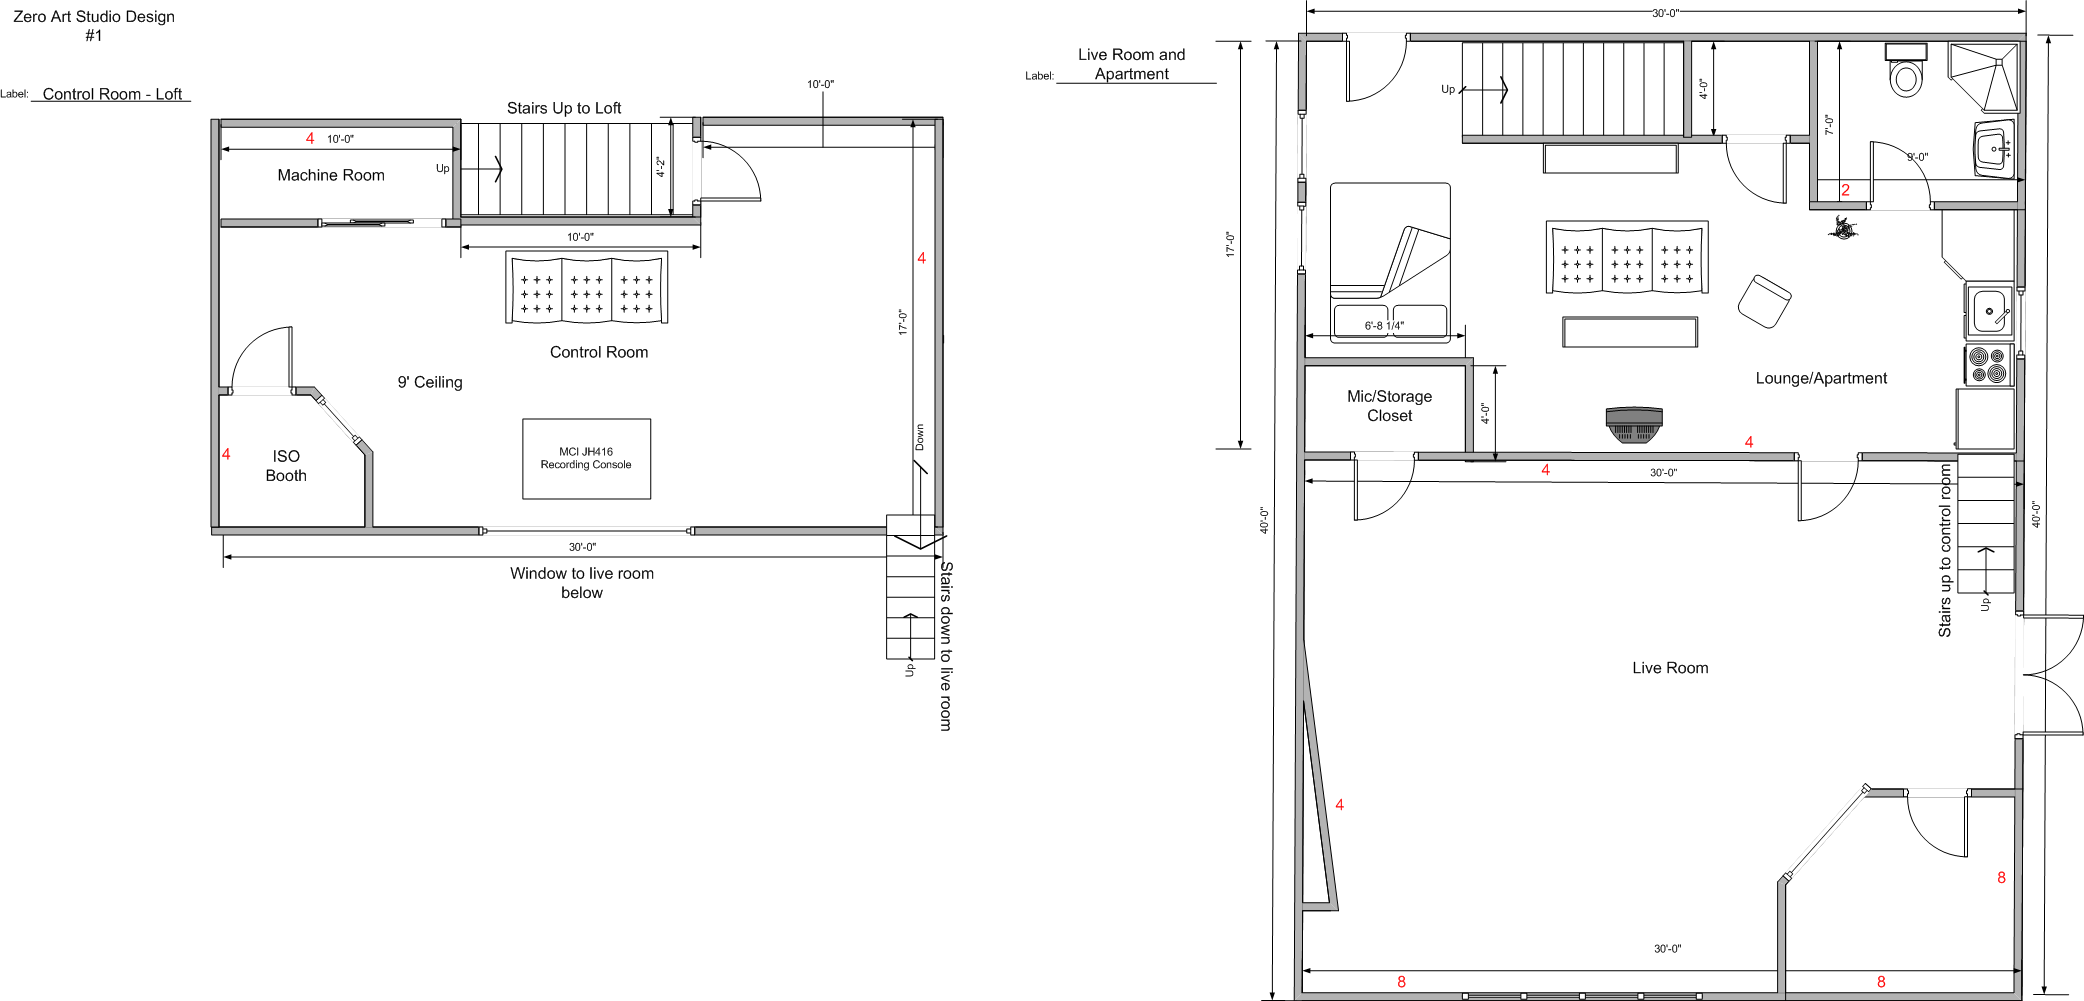 Wedding Floor Plan Software Recording Studio Layout Designs Joy Studio Design